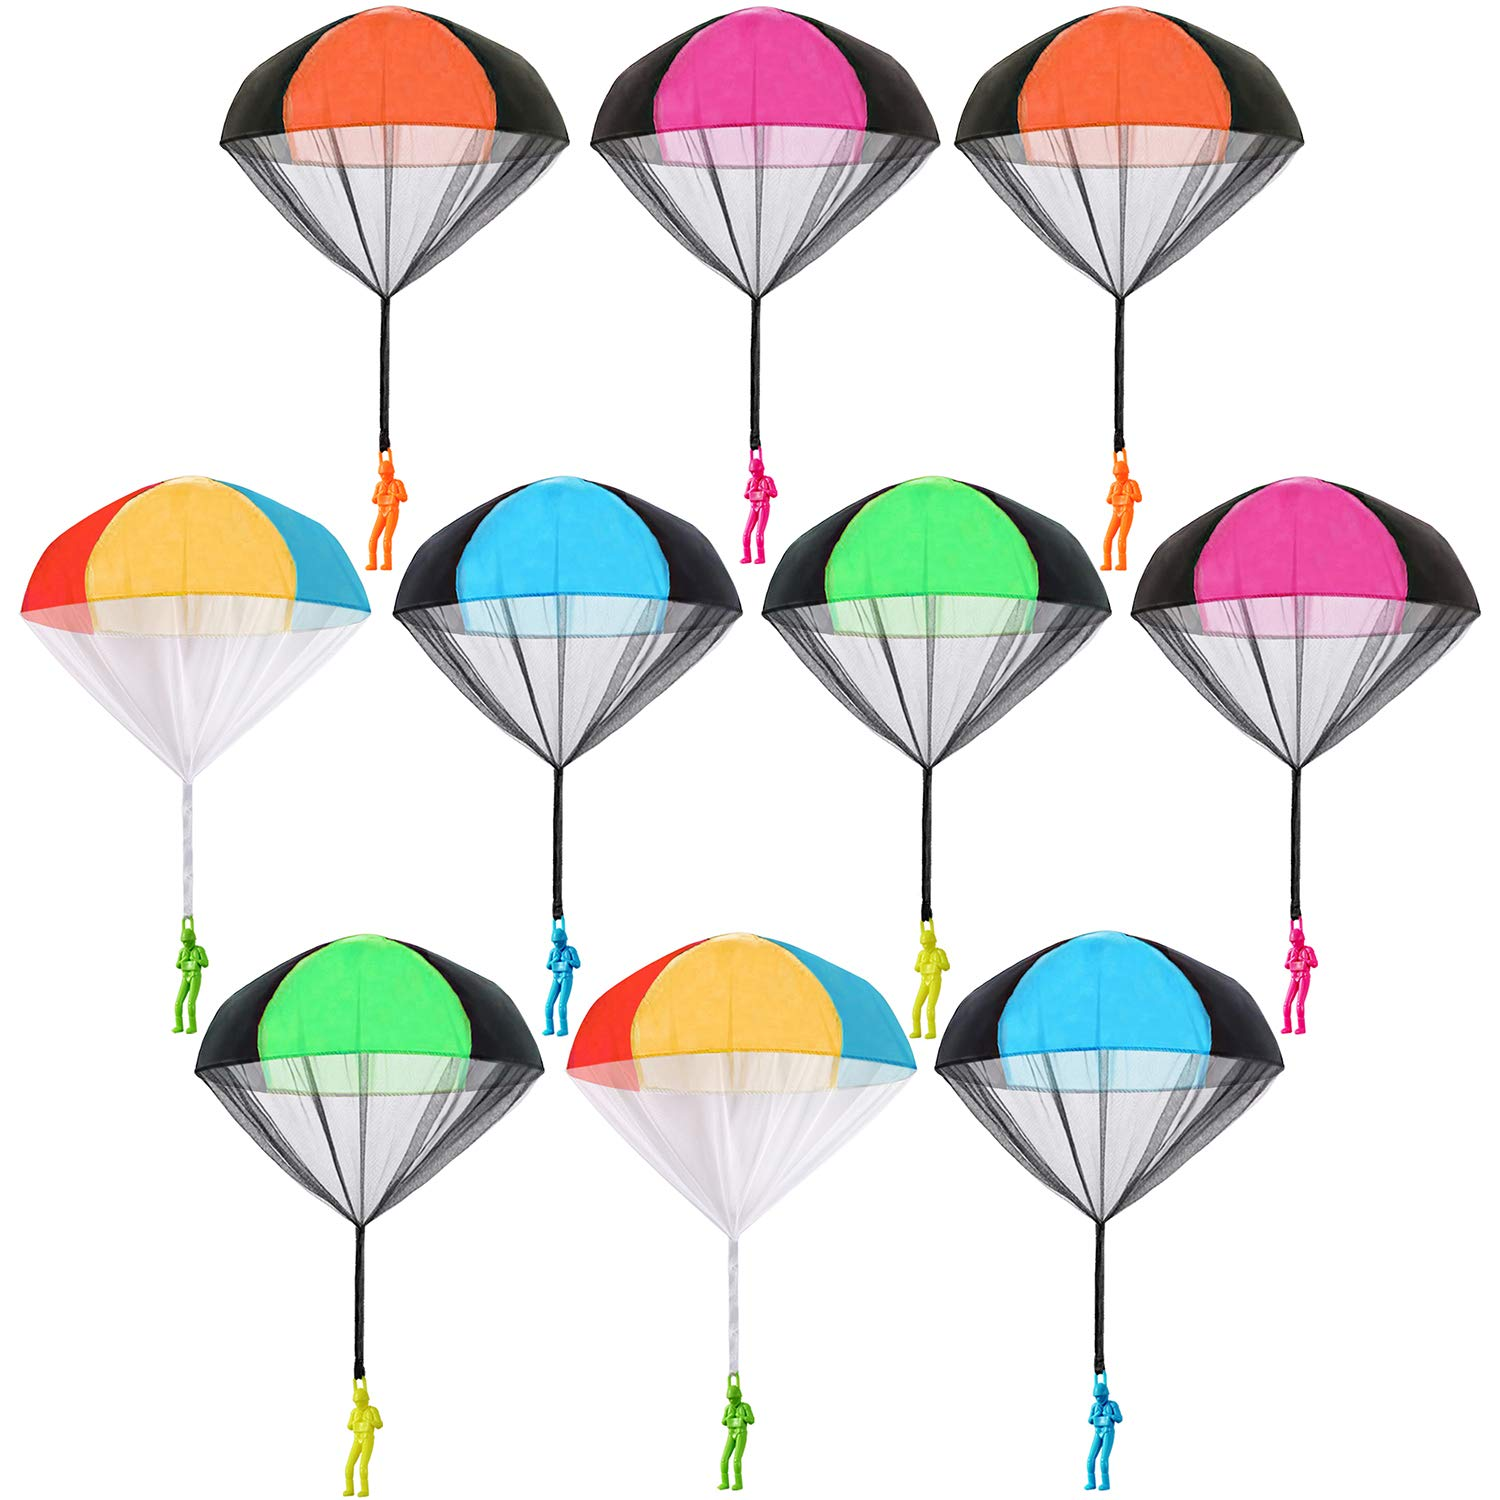 Trounistro 10 Pieces Parachute Toy Tangle Free Throwing Parachute Figures Hand Throw Soldiers Parachute Play Parachute Square Outdoor Children's Flying Toys by Trounistro